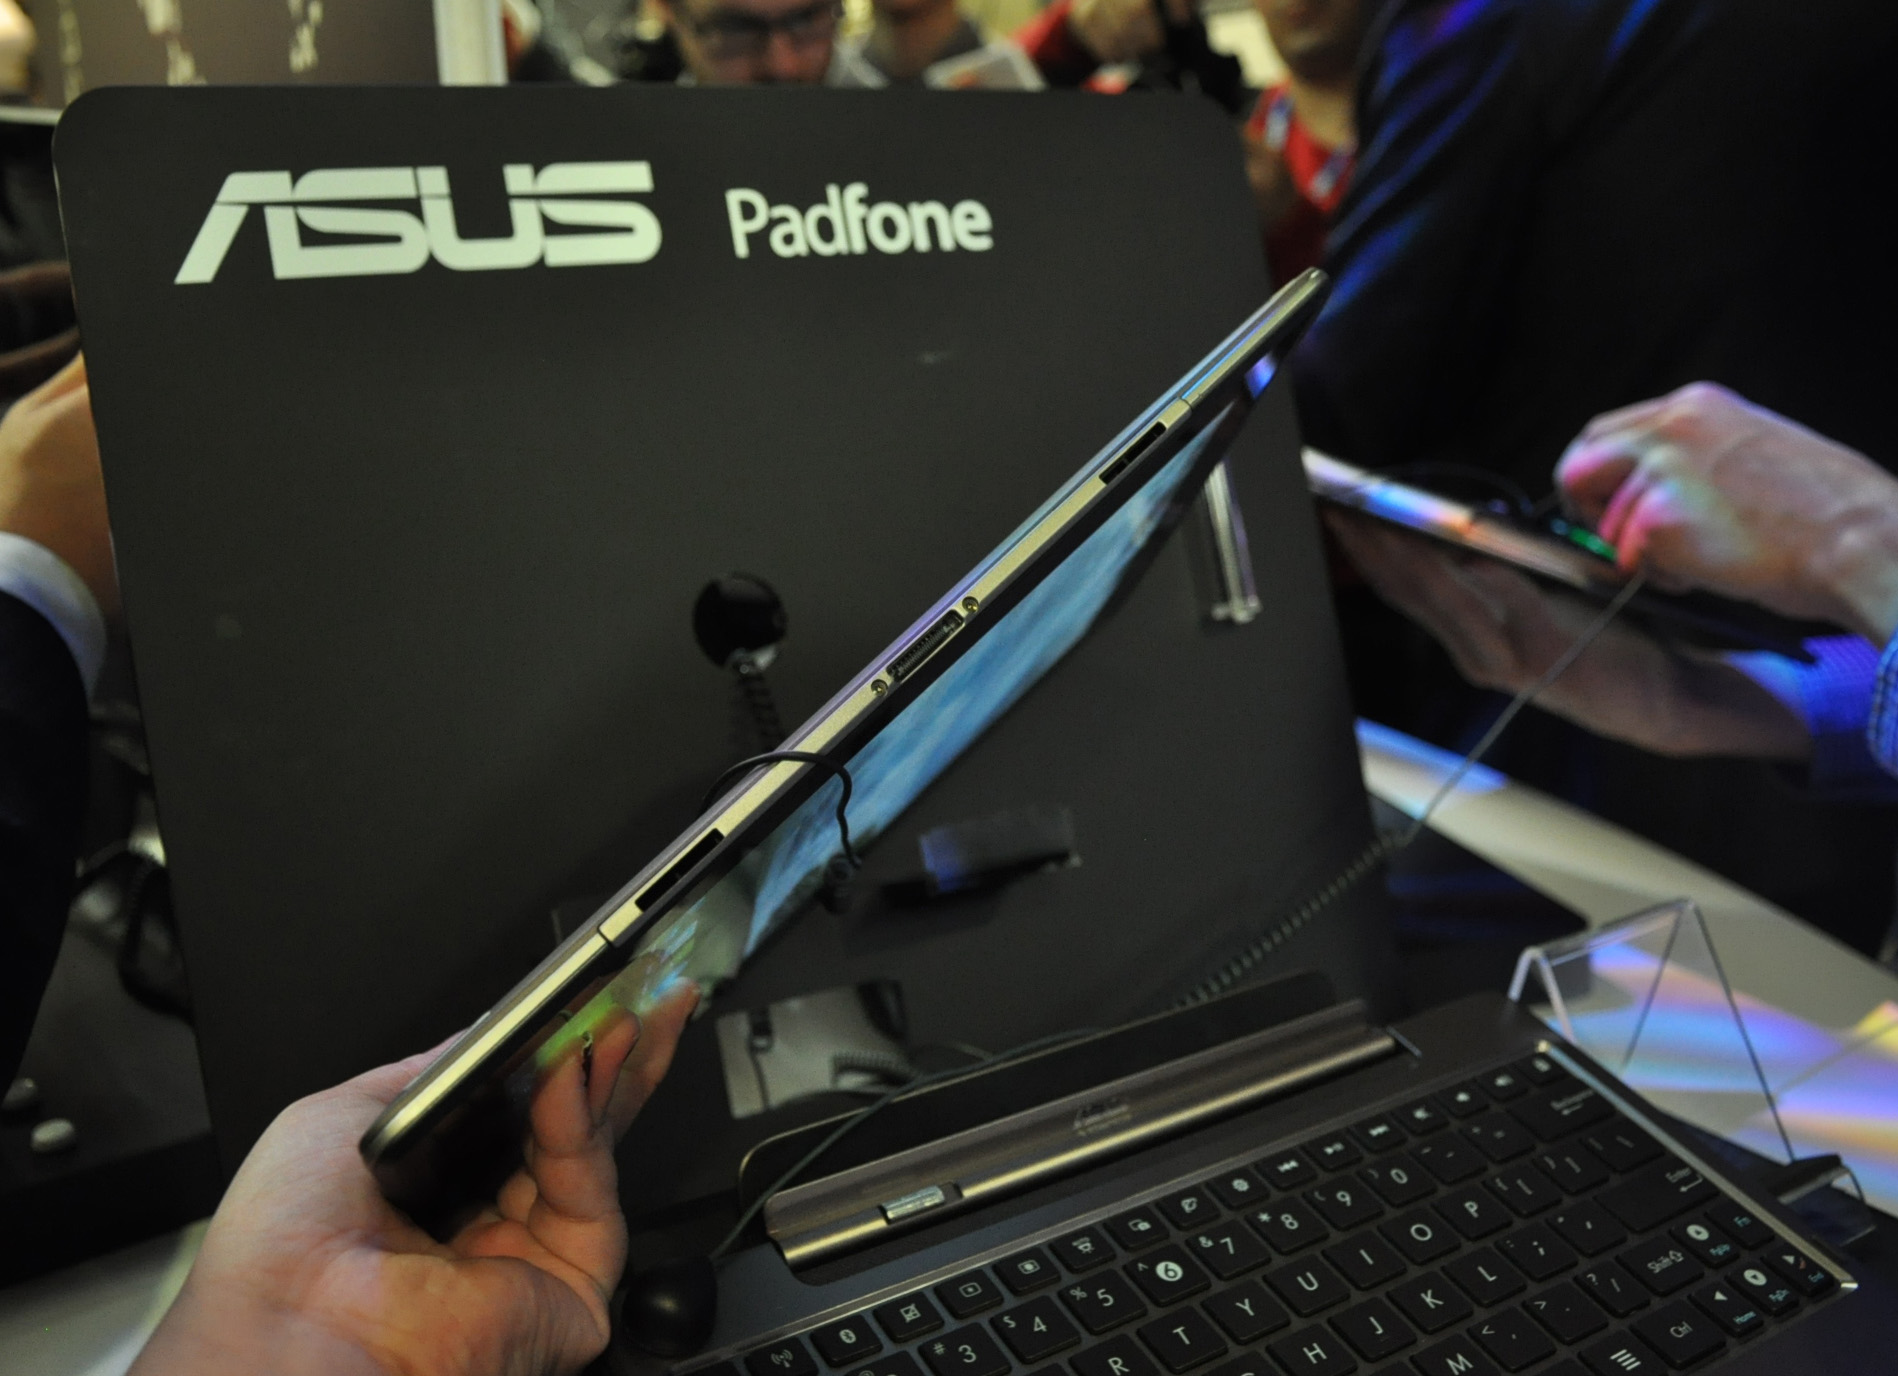 The other optional accessory that users can get is the keyboard dock which will effectively transform the PadFone/PadFone Station into a netbook.